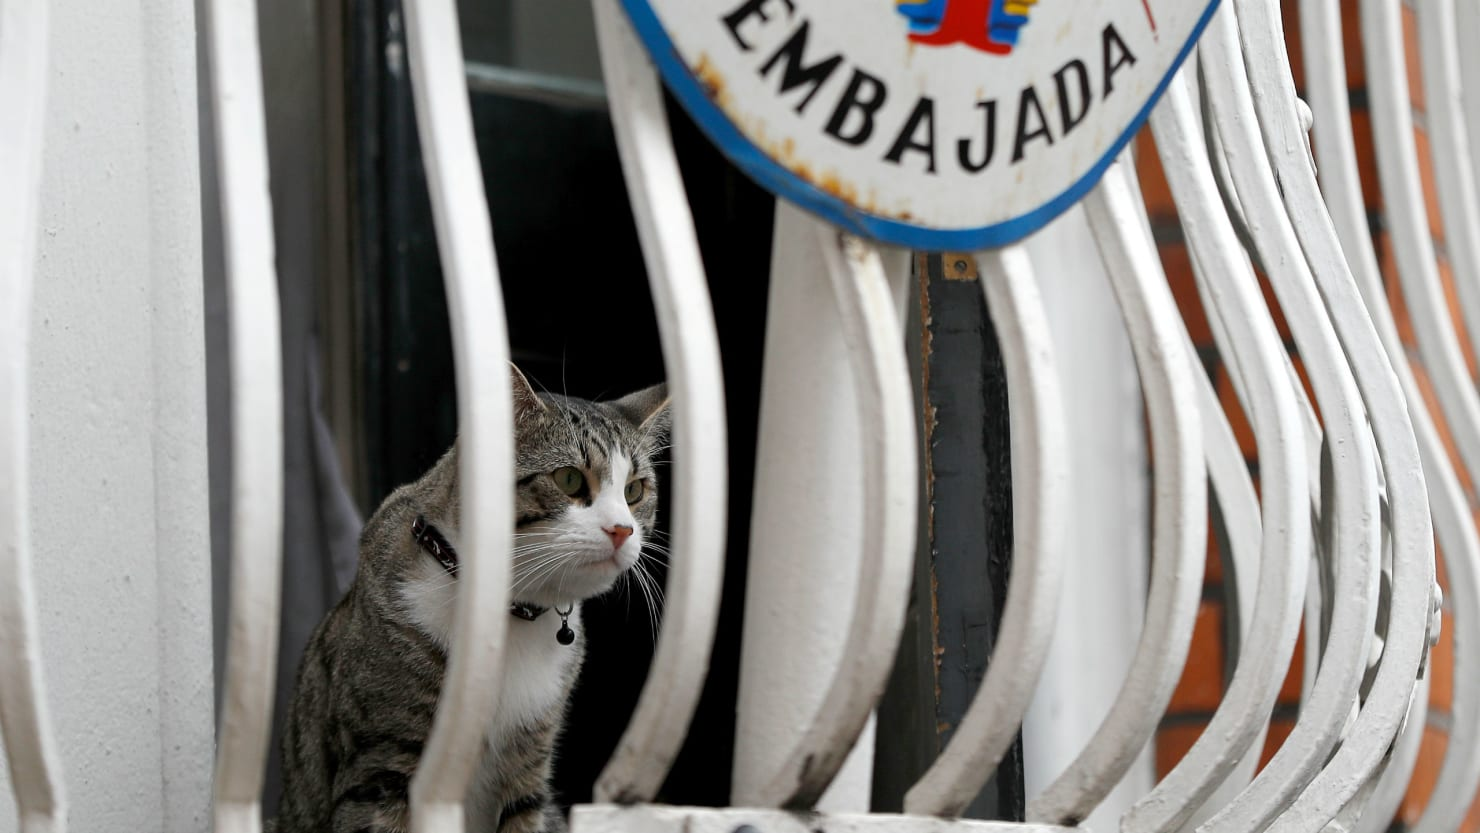 Julian Assange No Longer Has a Cat